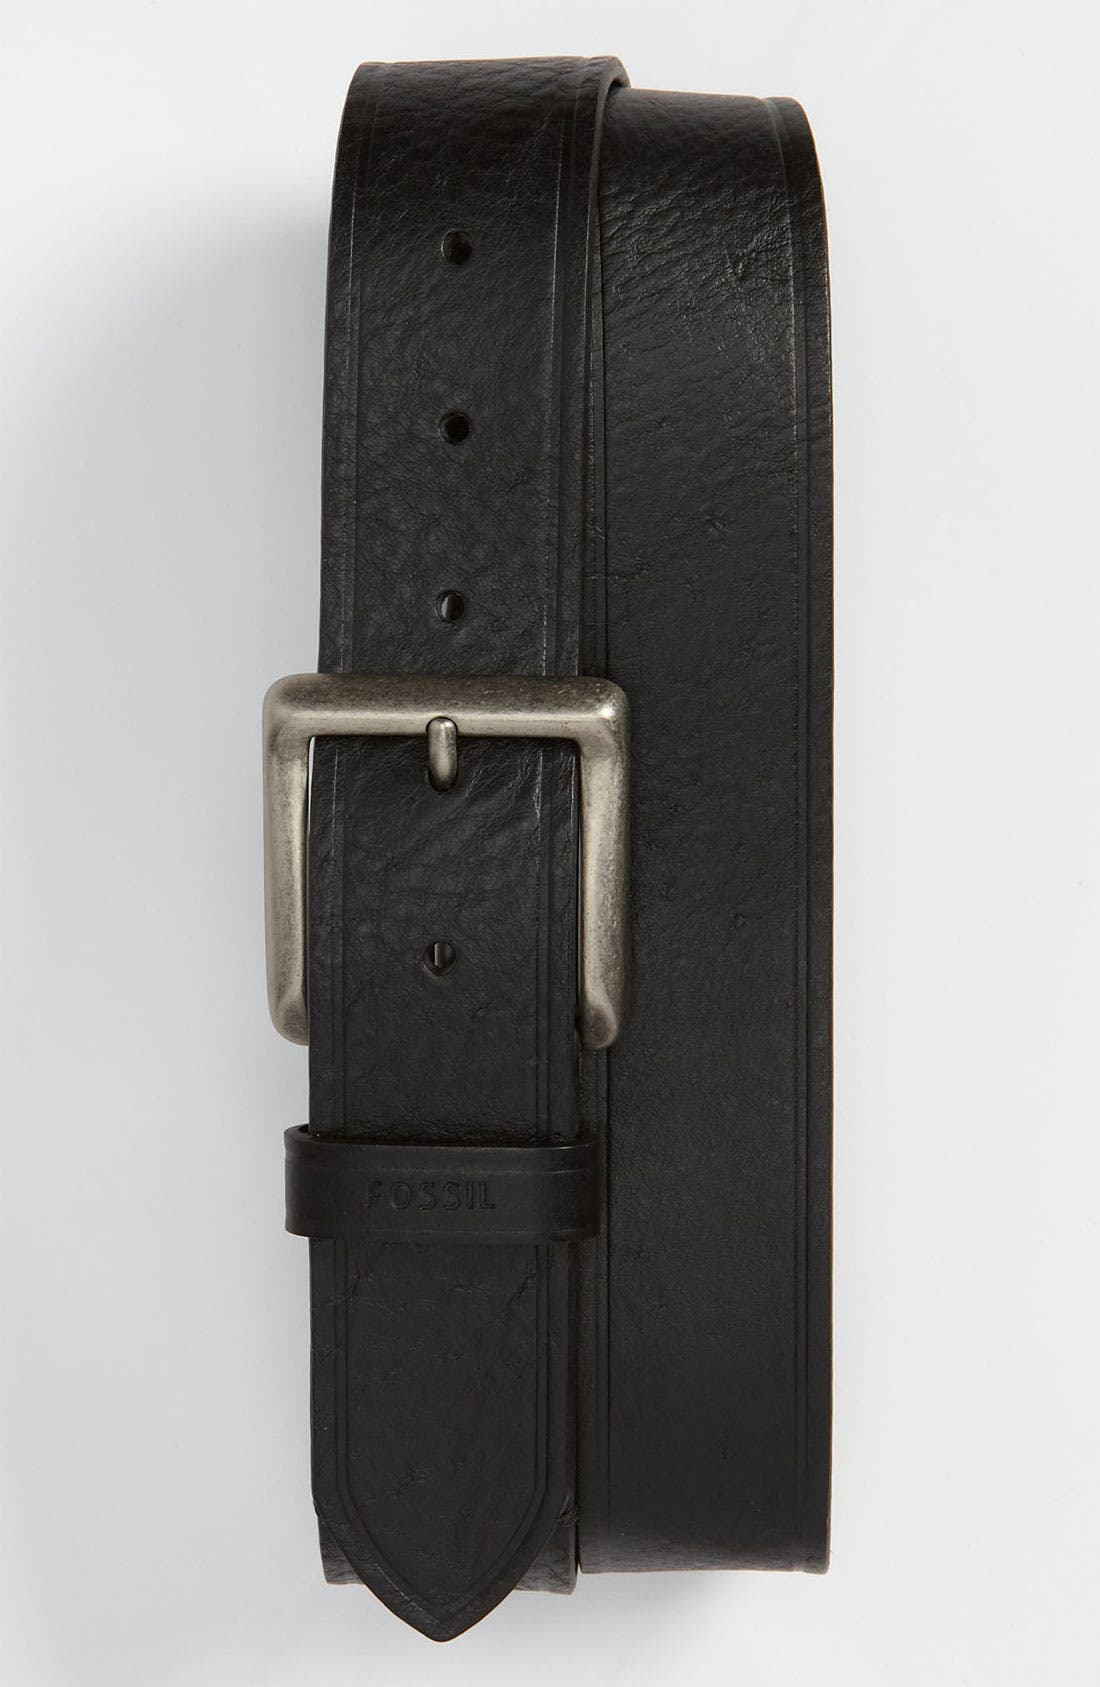 Alternate Image 1 Selected - Fossil 'Maxim' Leather Belt